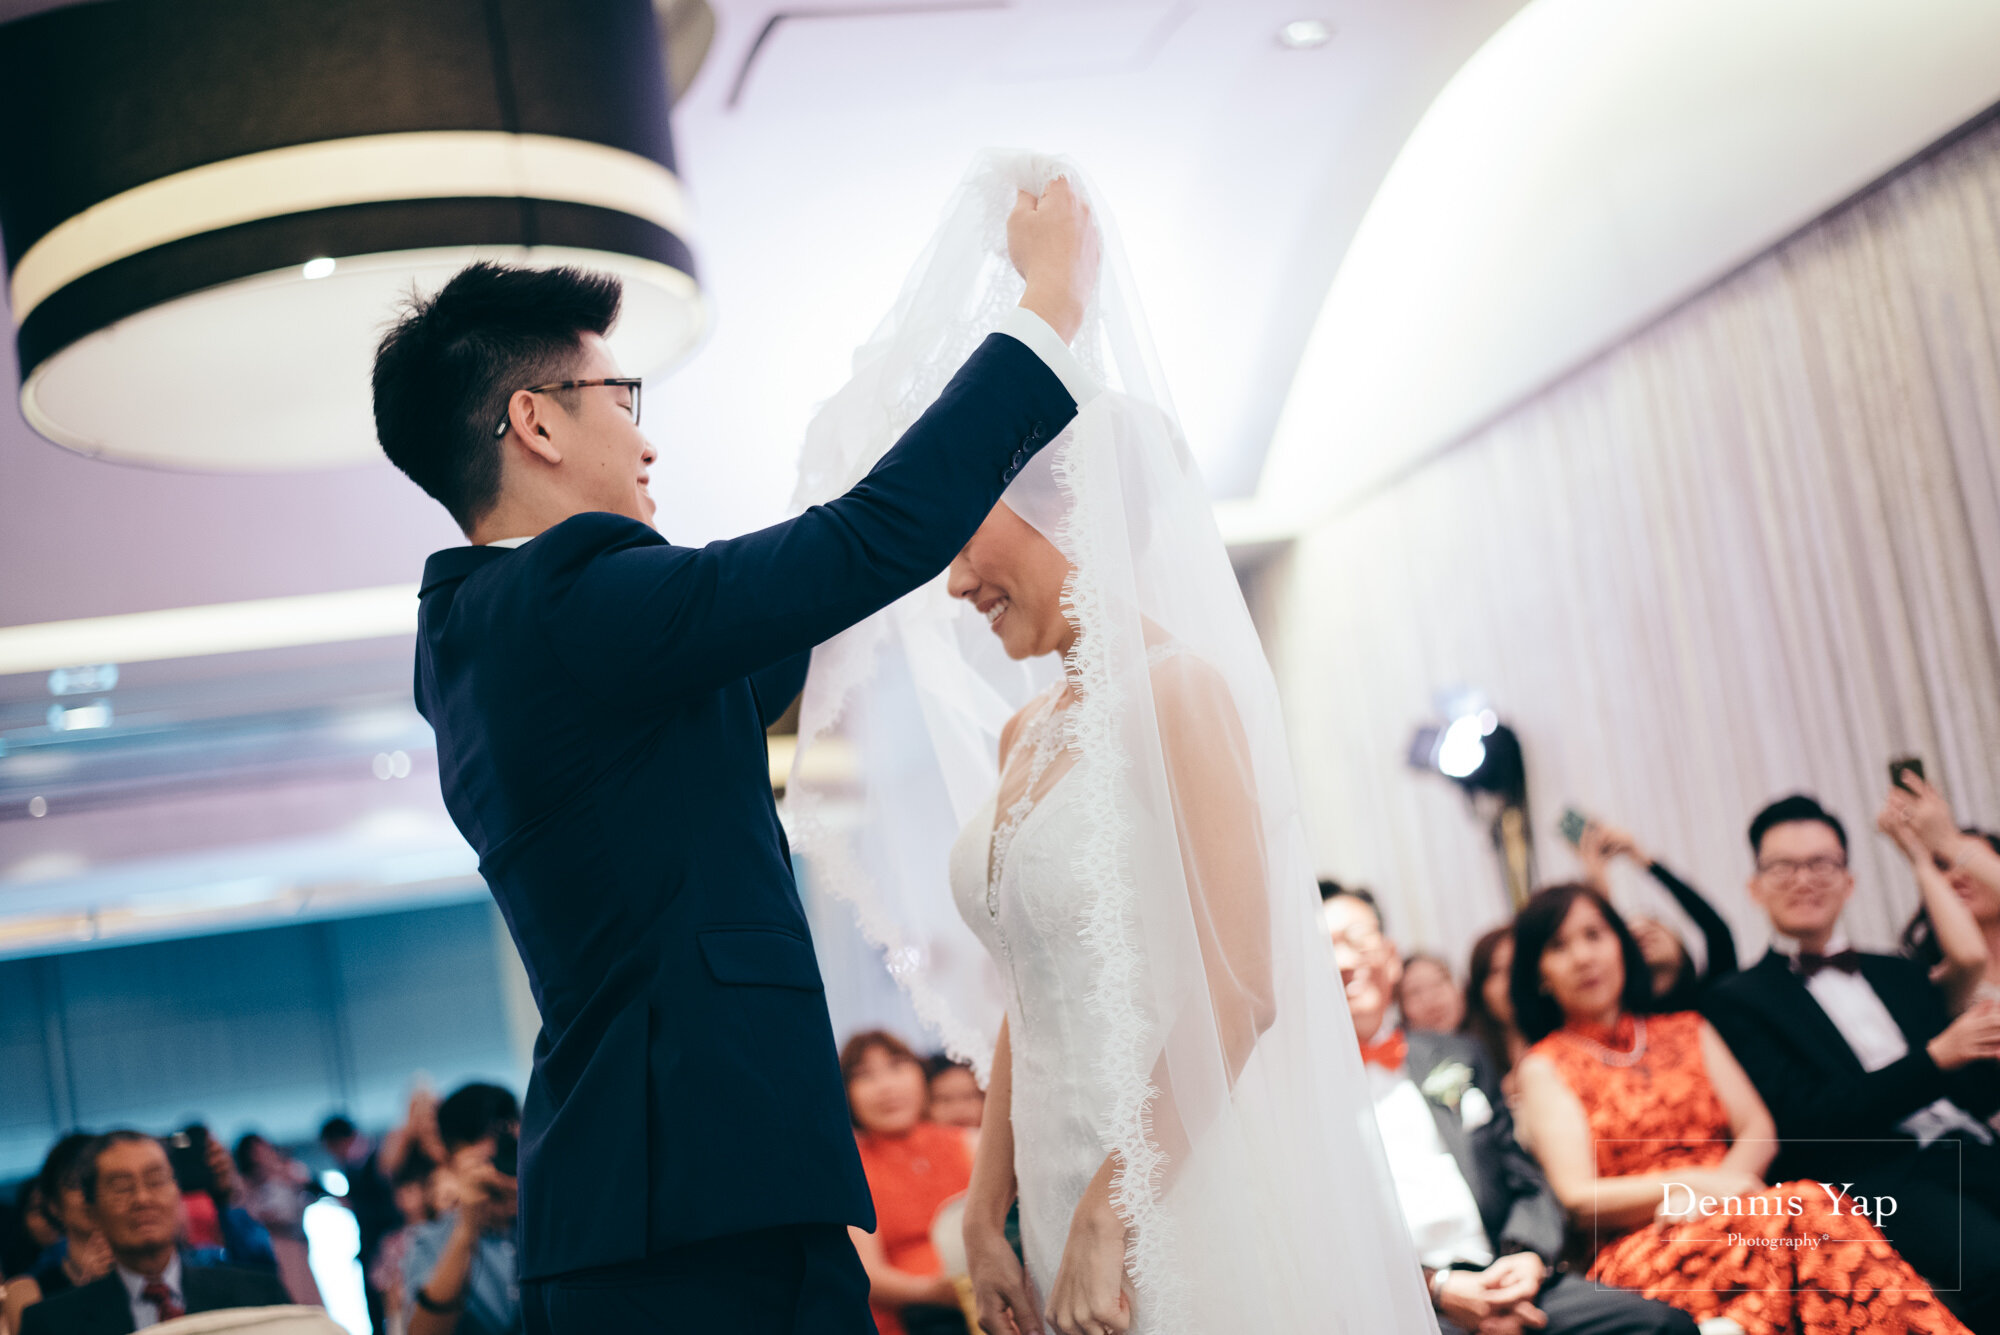 kevan khing wei wedding day hilton kuala lumpur vow exchange ceremony dennis yap photography malaysia top wedding photographer-20.jpg